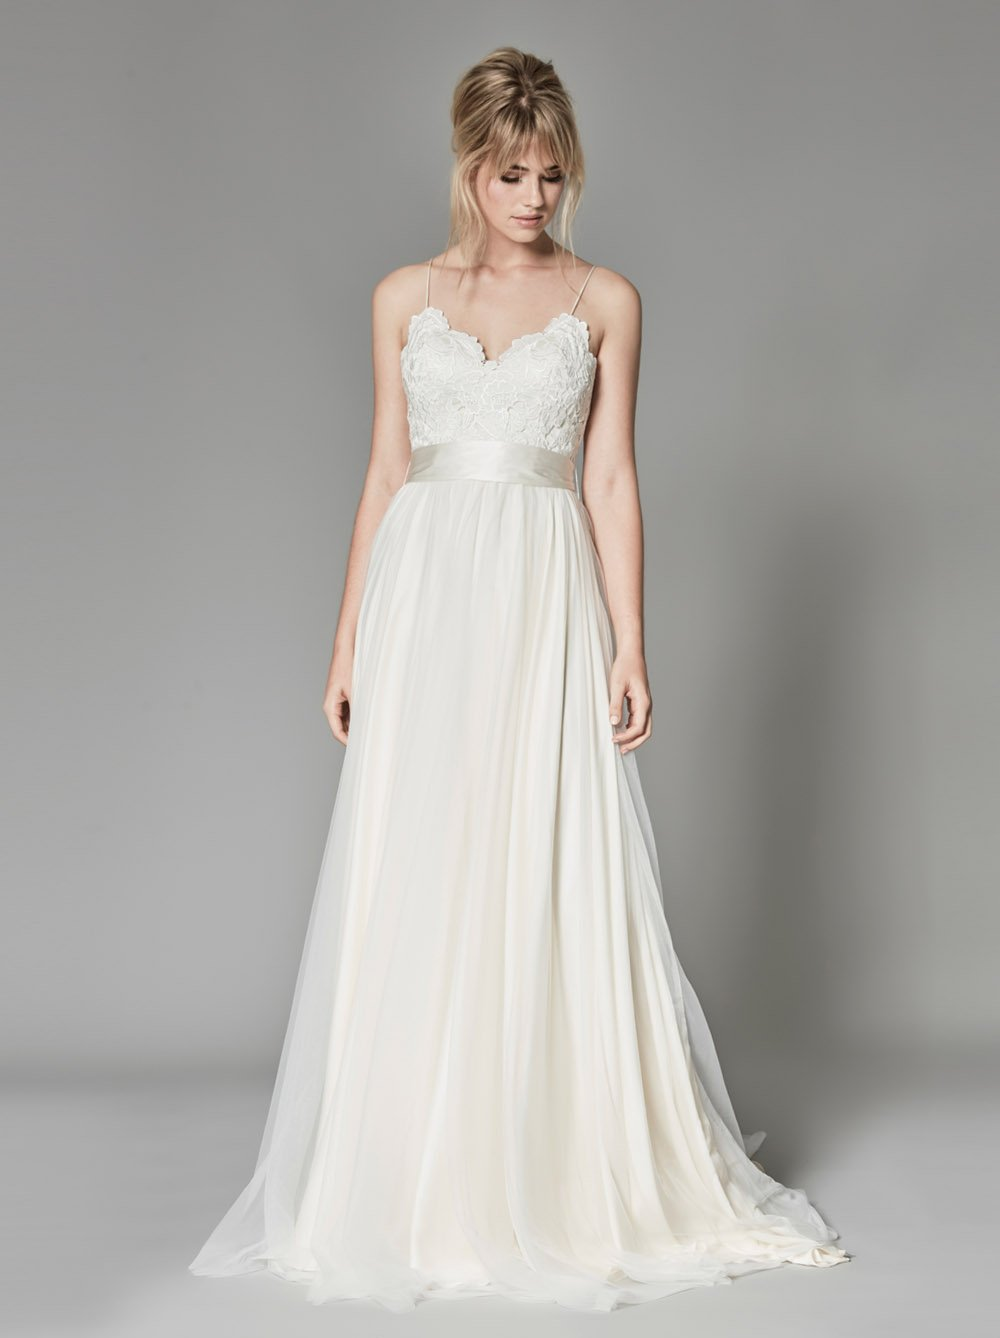 Korrine Gown